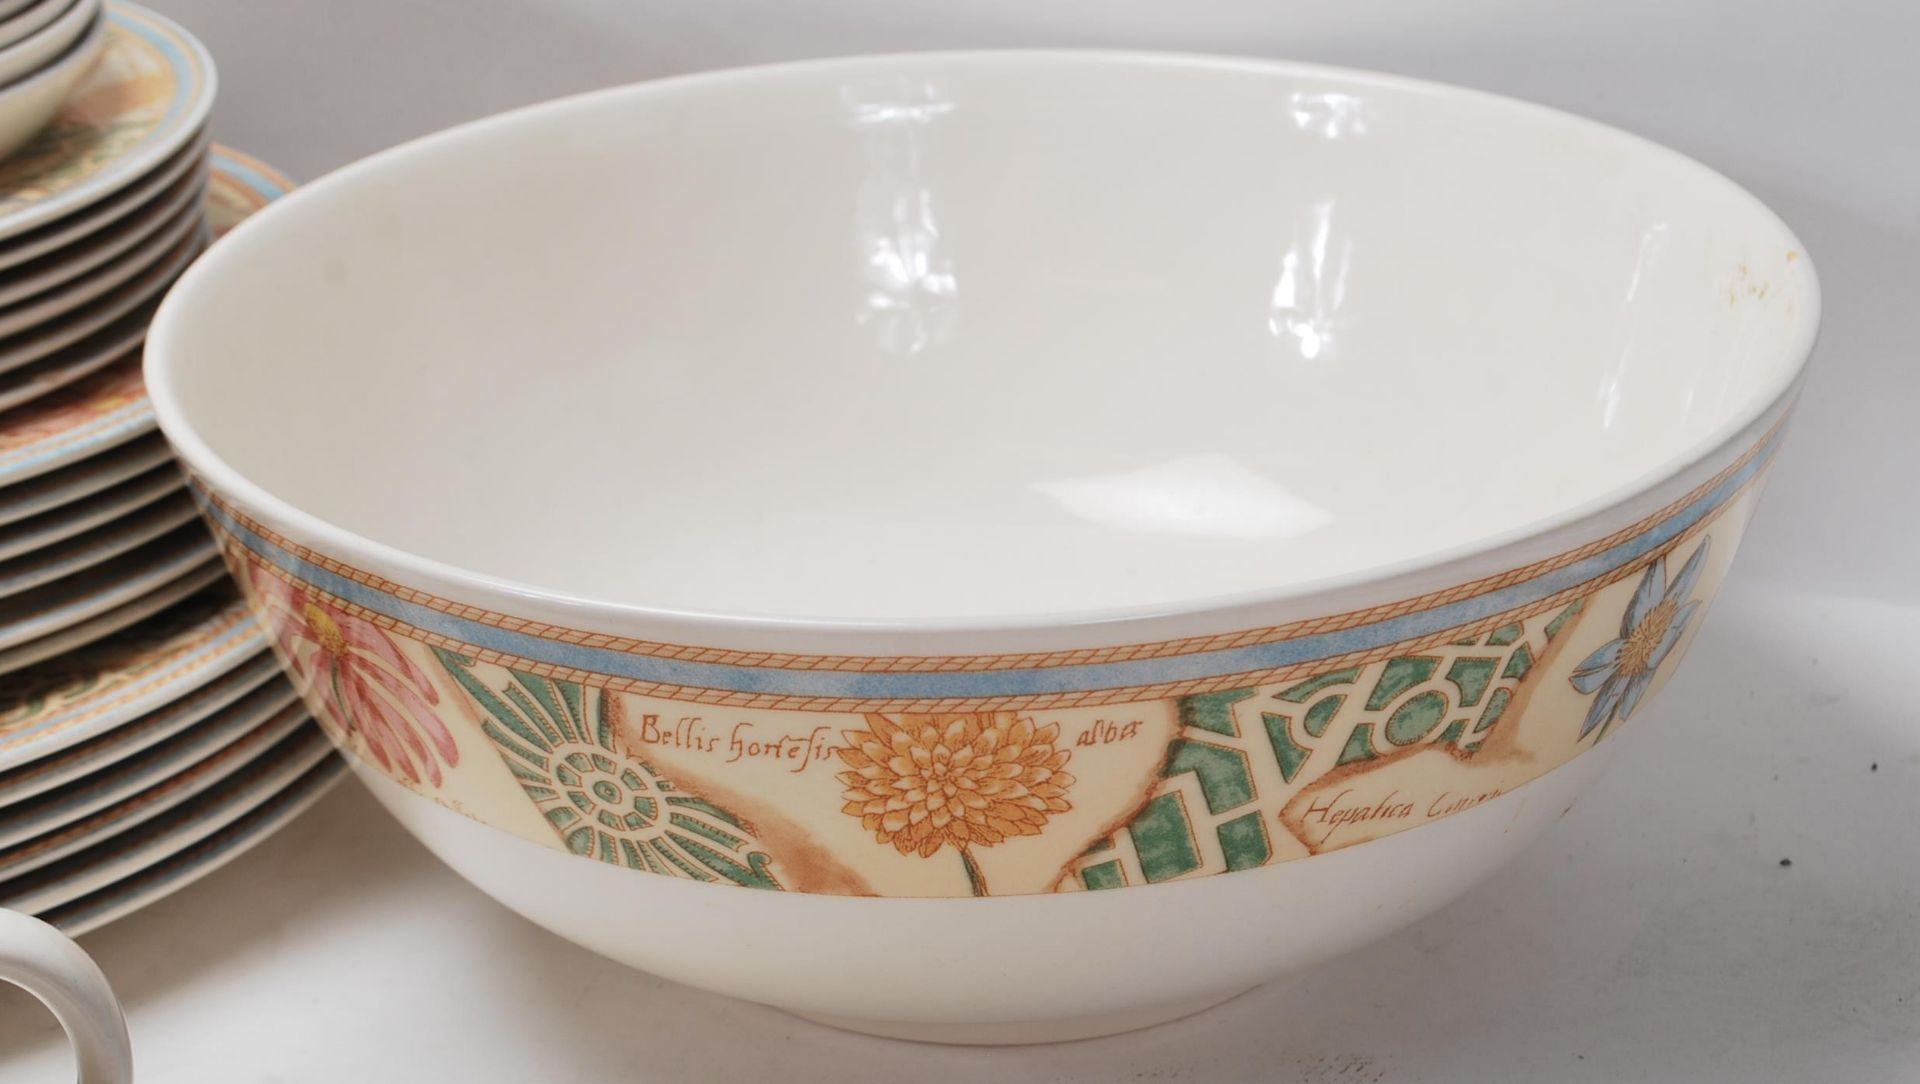 A LARGE 20TH CENTURY WEDGWOOD DINNER SERVICE WITH GRDEN MAZE PATTERN - Image 6 of 11